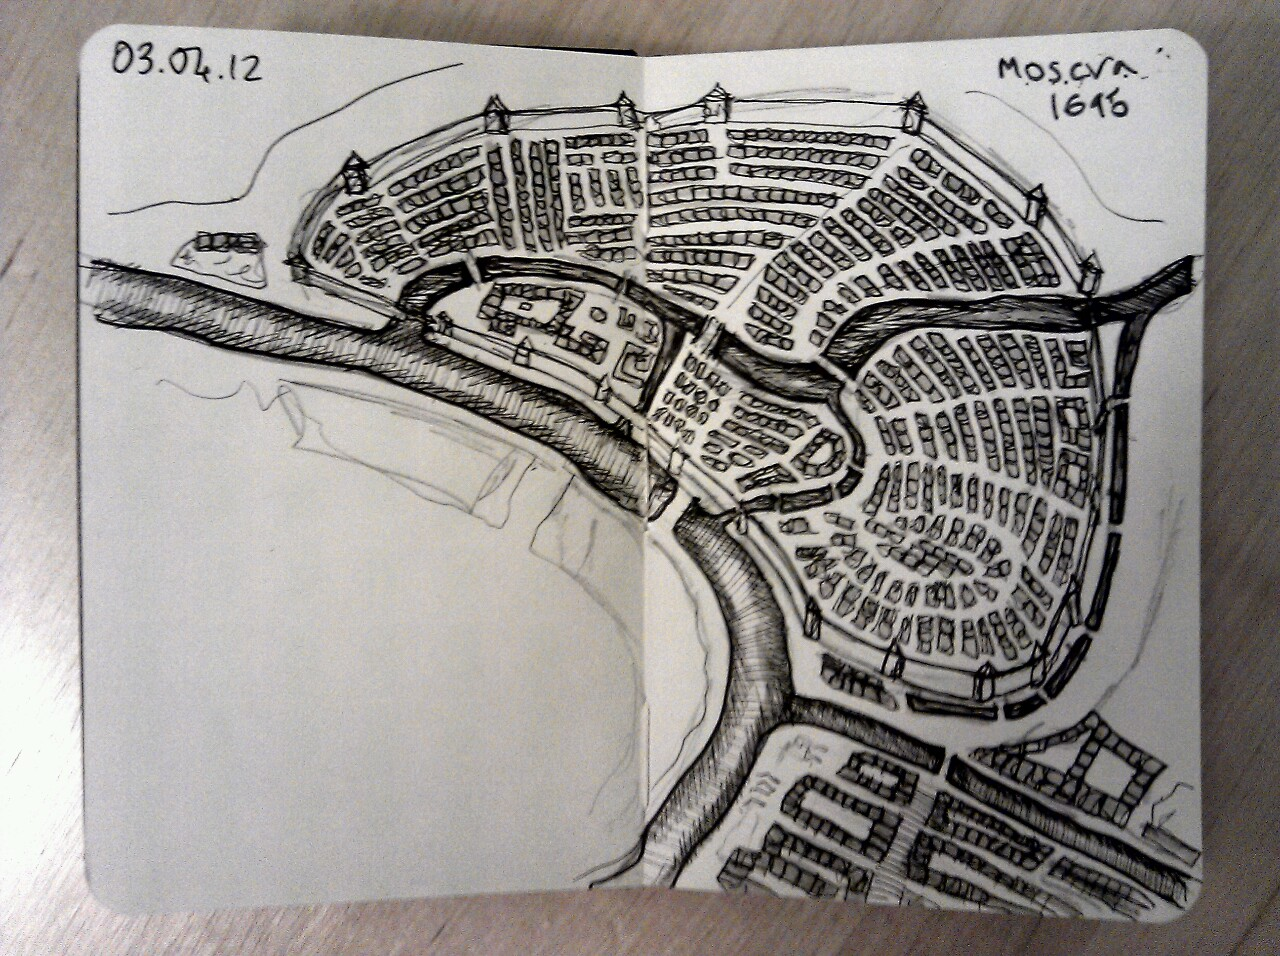 365 drawings later … day 63 … moscova 1695